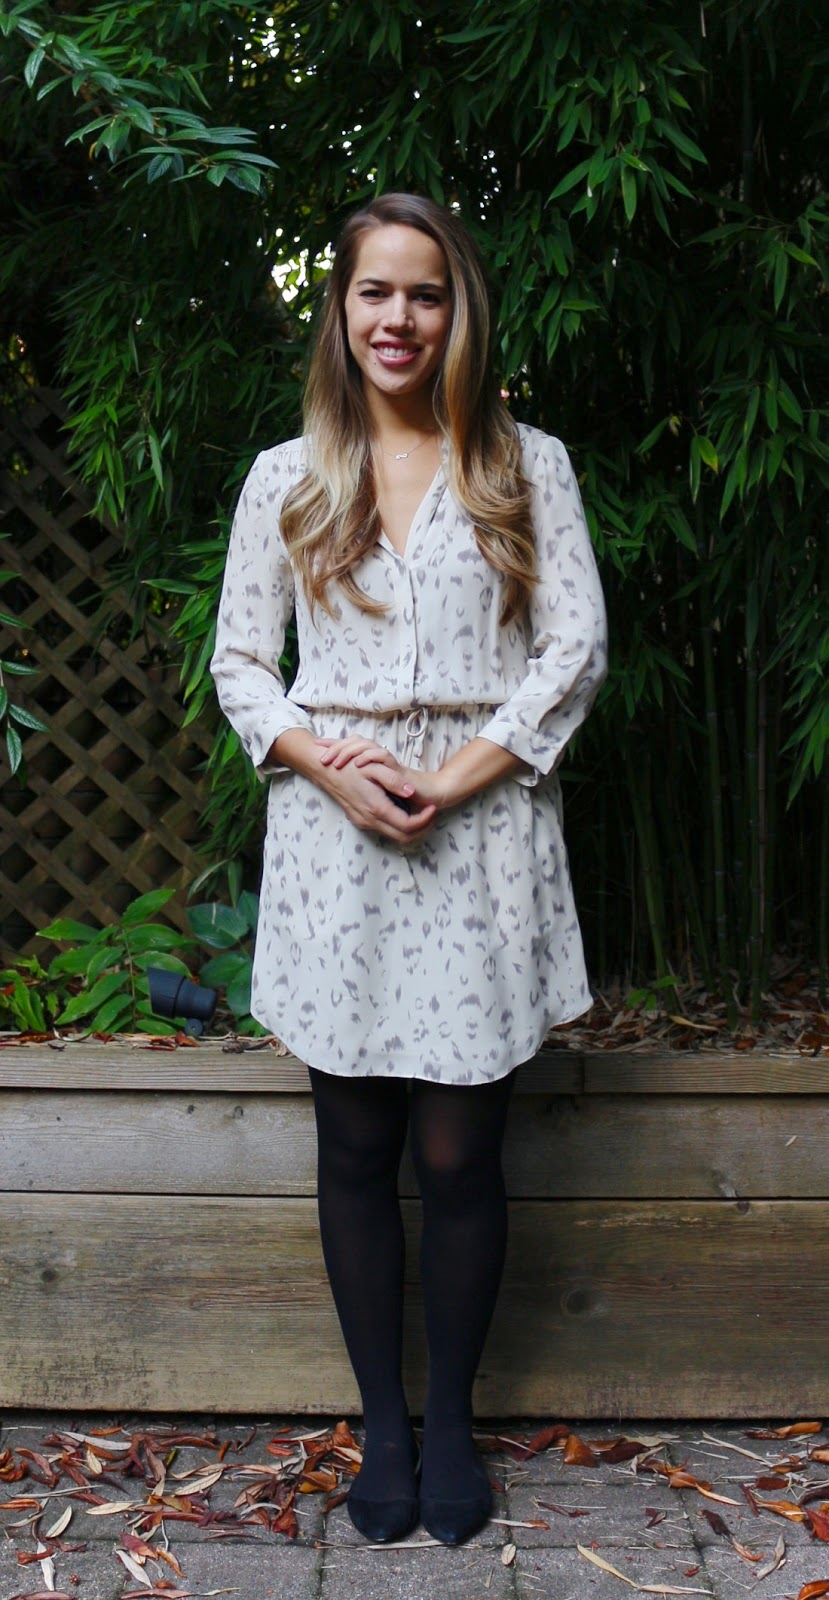 Jules in Flats - Babaton Bennett Silk Shirtdress in Snow Leopard (Business Casual Fall Workwear on a Budget)